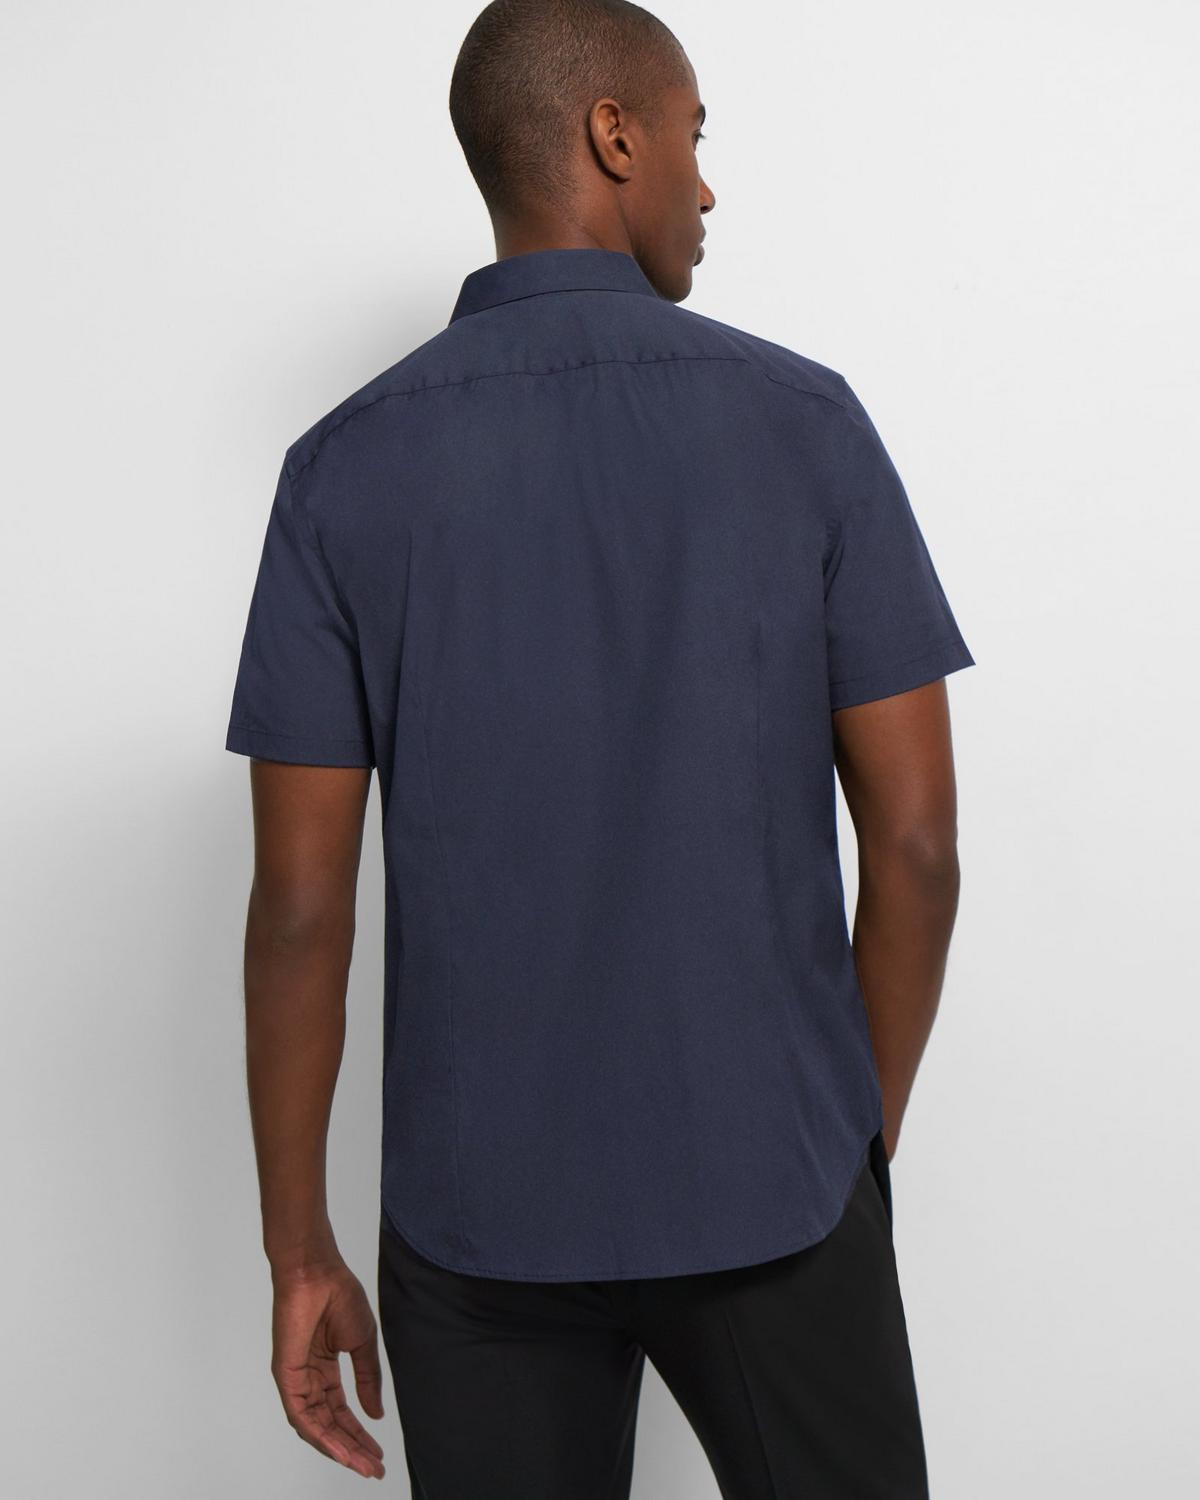 Sylvain Short-Sleeve Shirt in Good Cotton